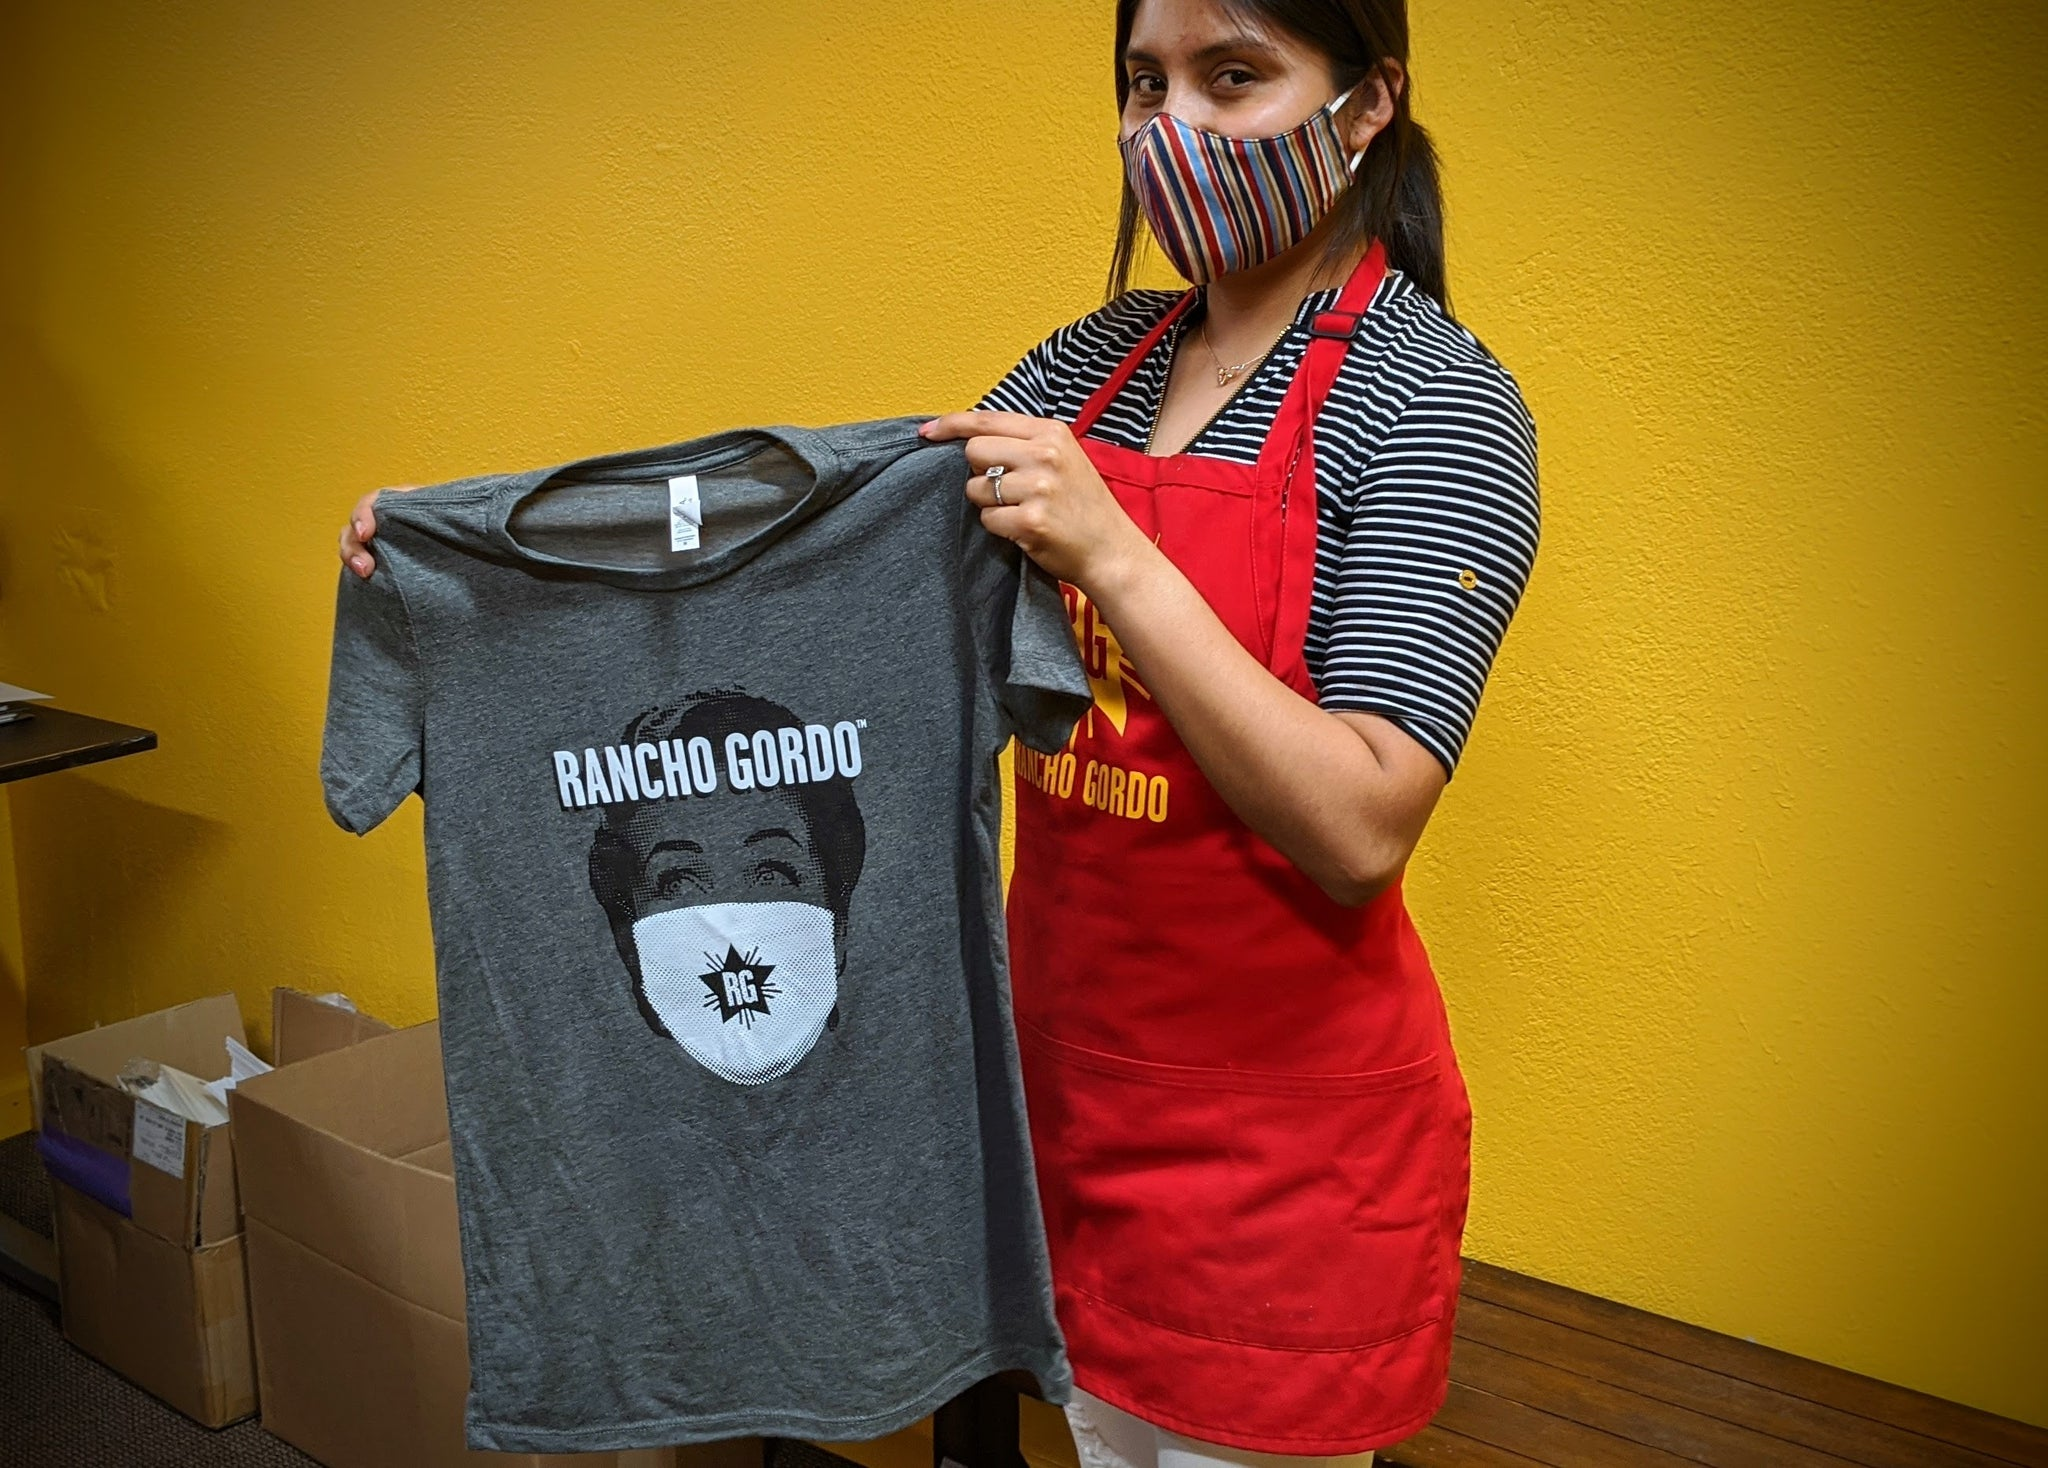 Rancho Gordo Quarantine Cooking T-Shirts